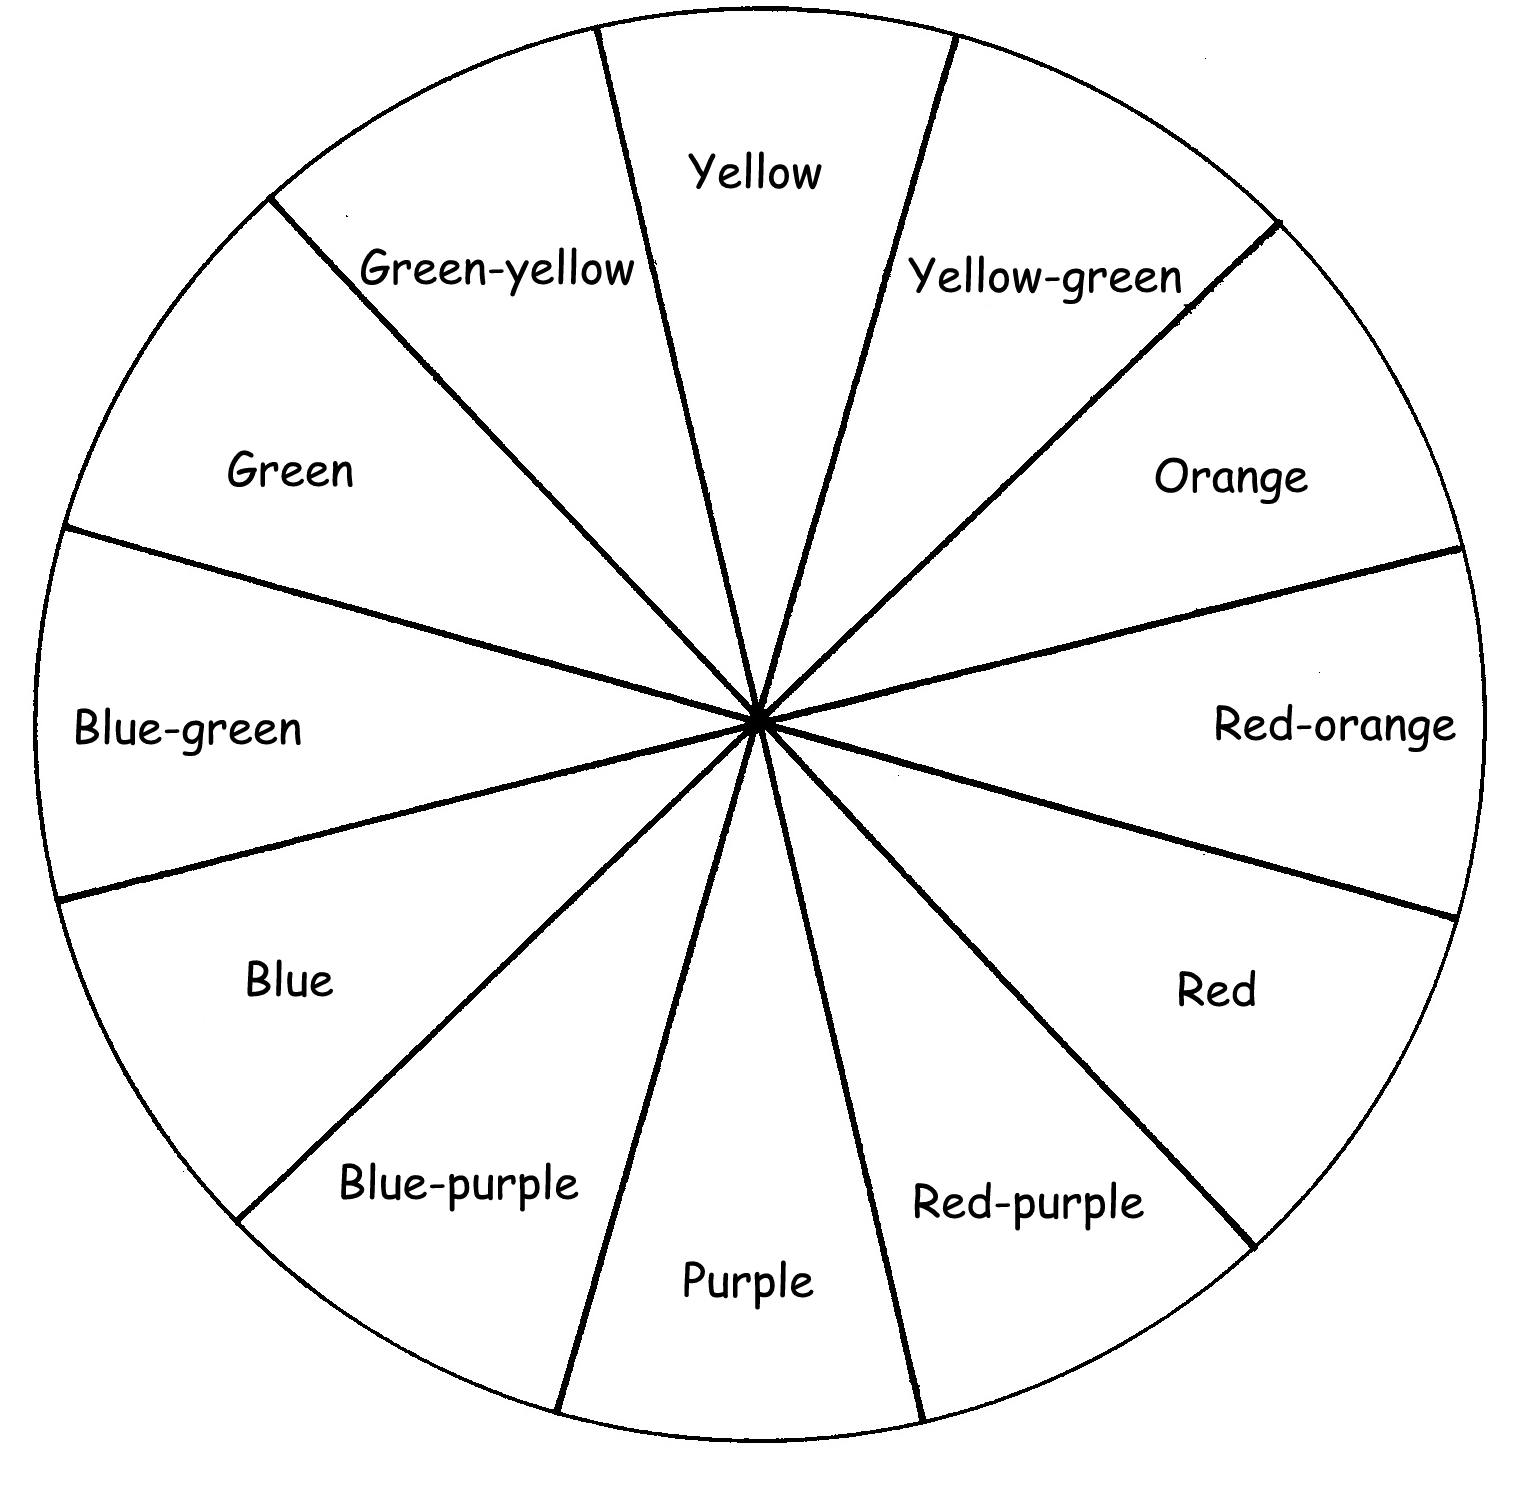 Color wheel drawing at free for personal for Wheel coloring page